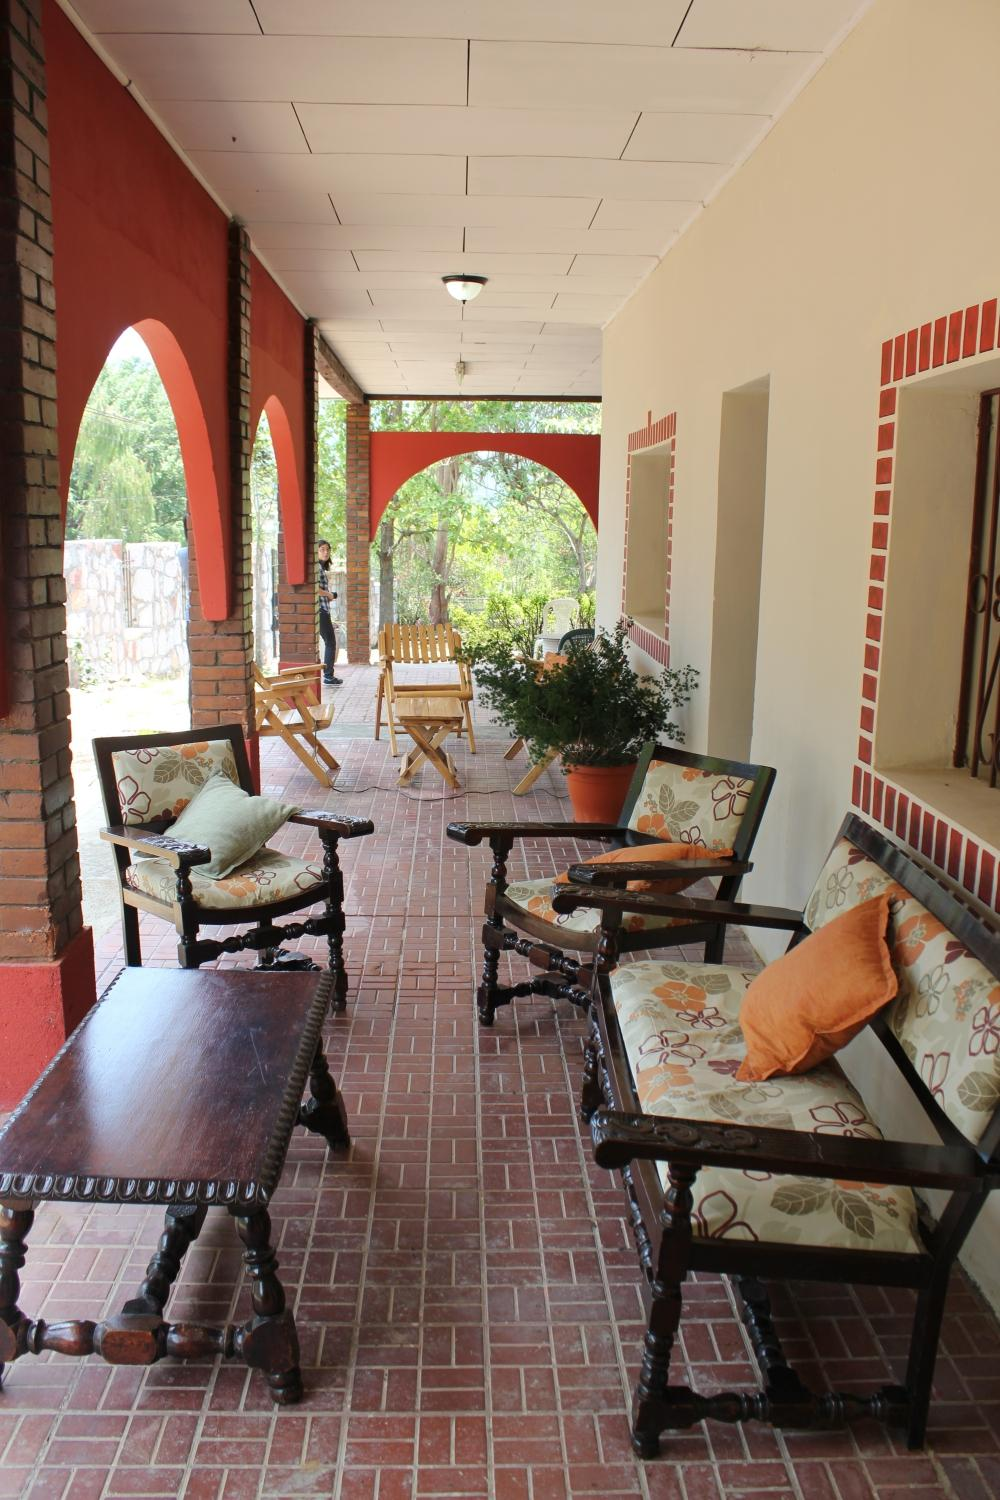 Hotel San Jose Bed and Breakfast